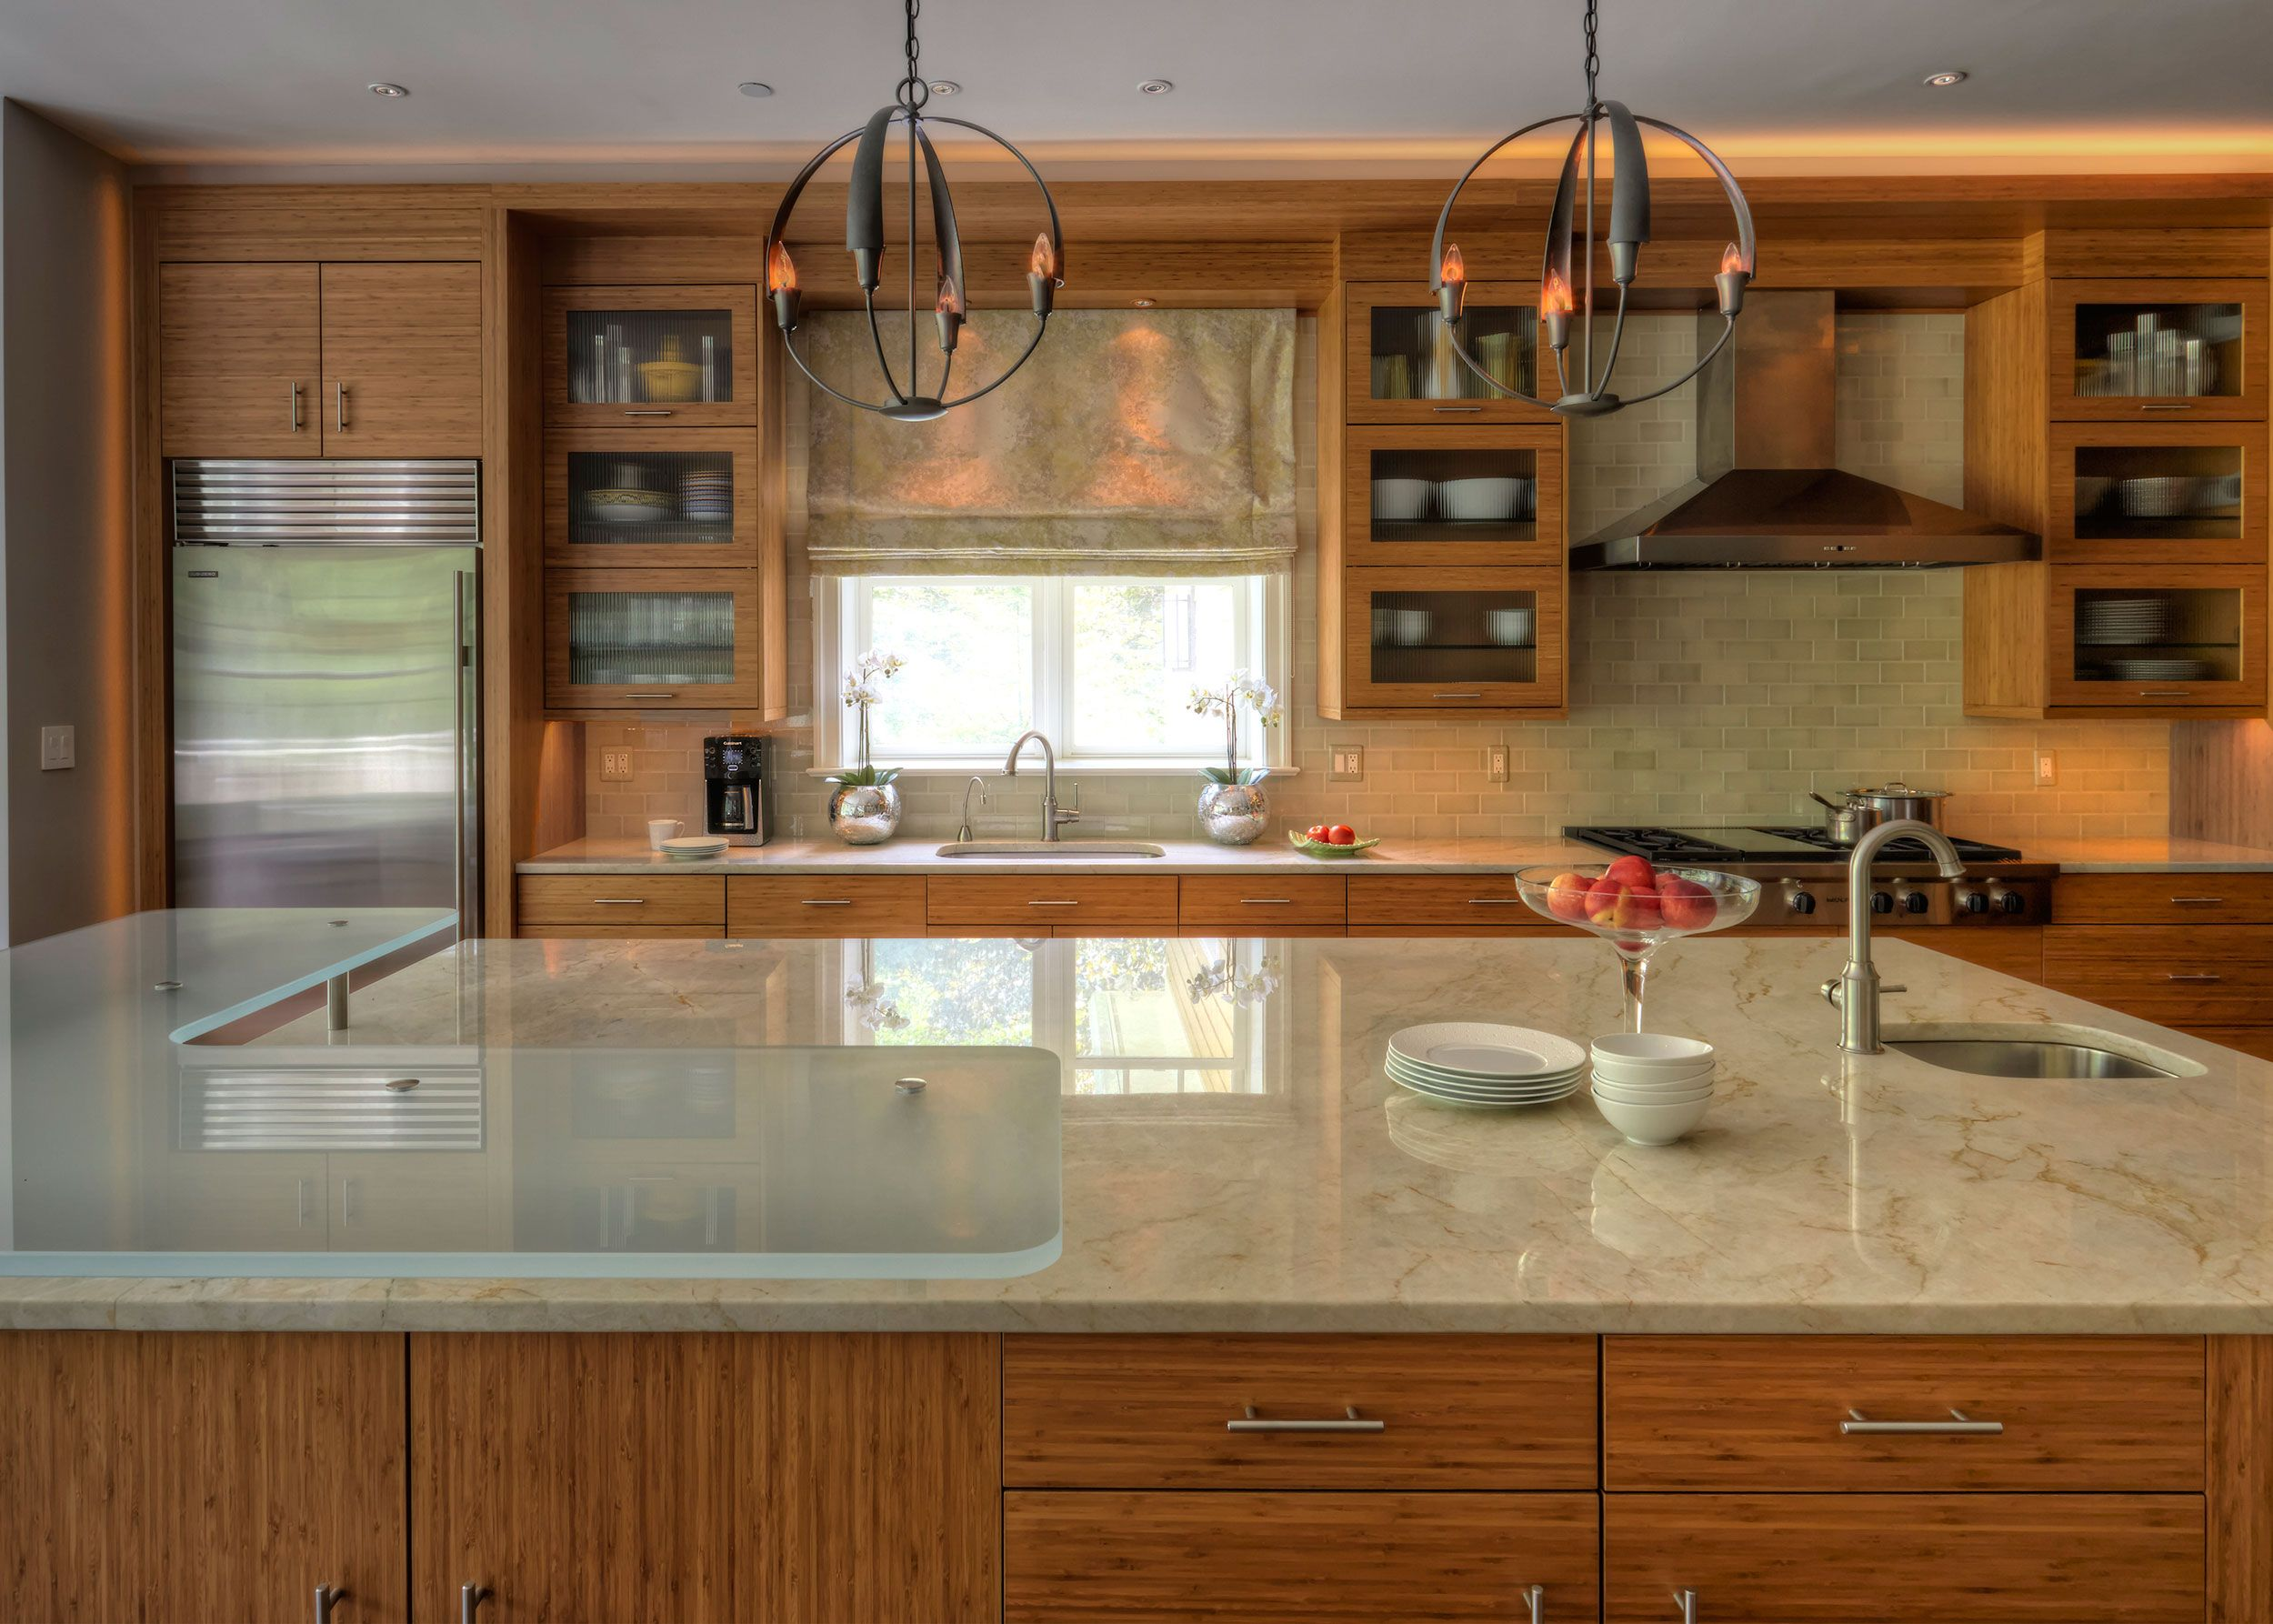 large kitchen first place name mark t white ckd cbd photo mike kaskel with images on t kitchen layout id=46941